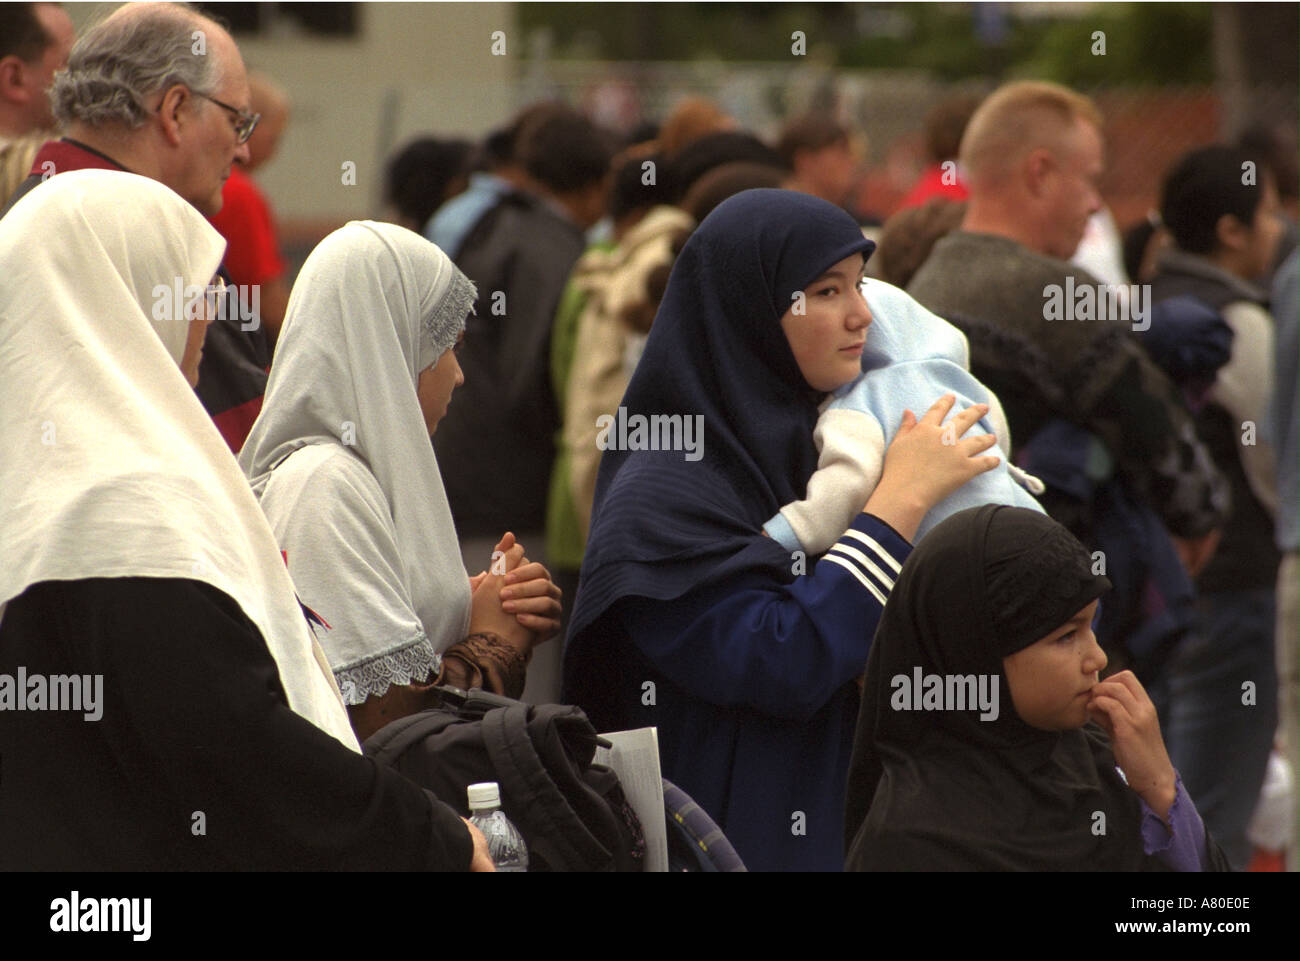 Muslim mom baby family headscarf at Minnesota Remembers Memorial Service at capitol for 9/11 victims. St Paul Minnesota MN USA - Stock Image